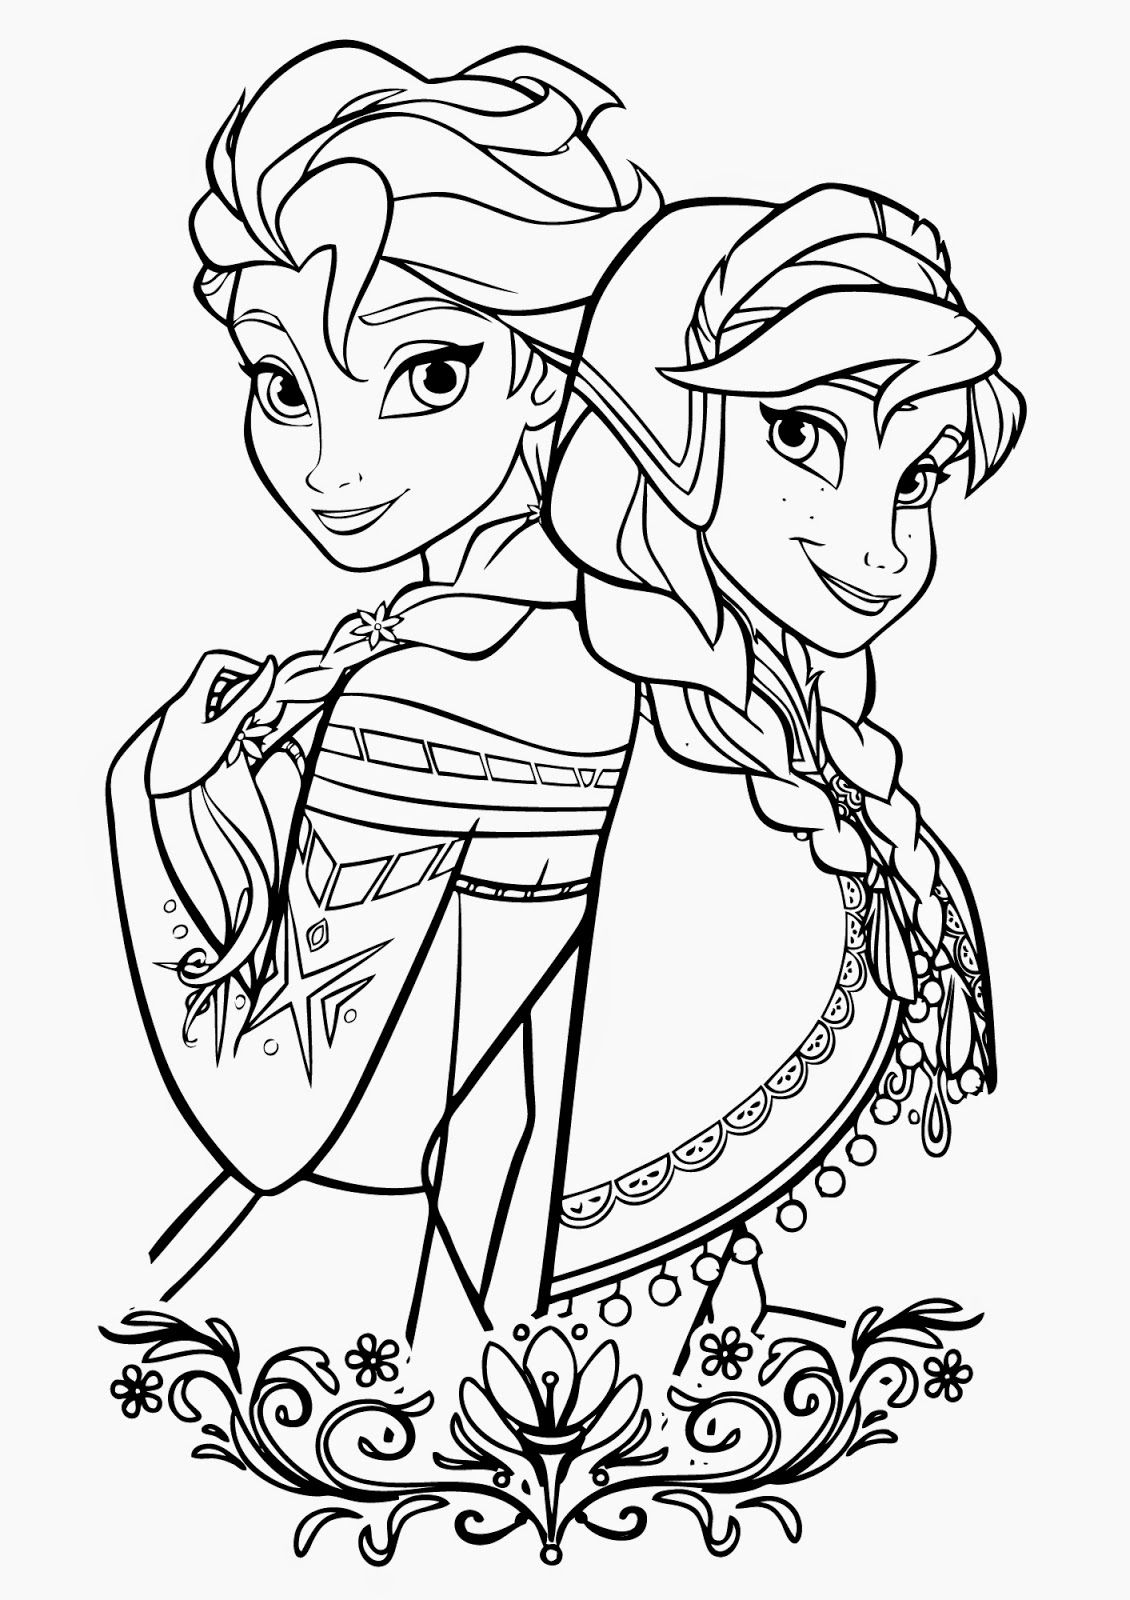 pin by maaike cramer on coloring pages kids pinterest coloring